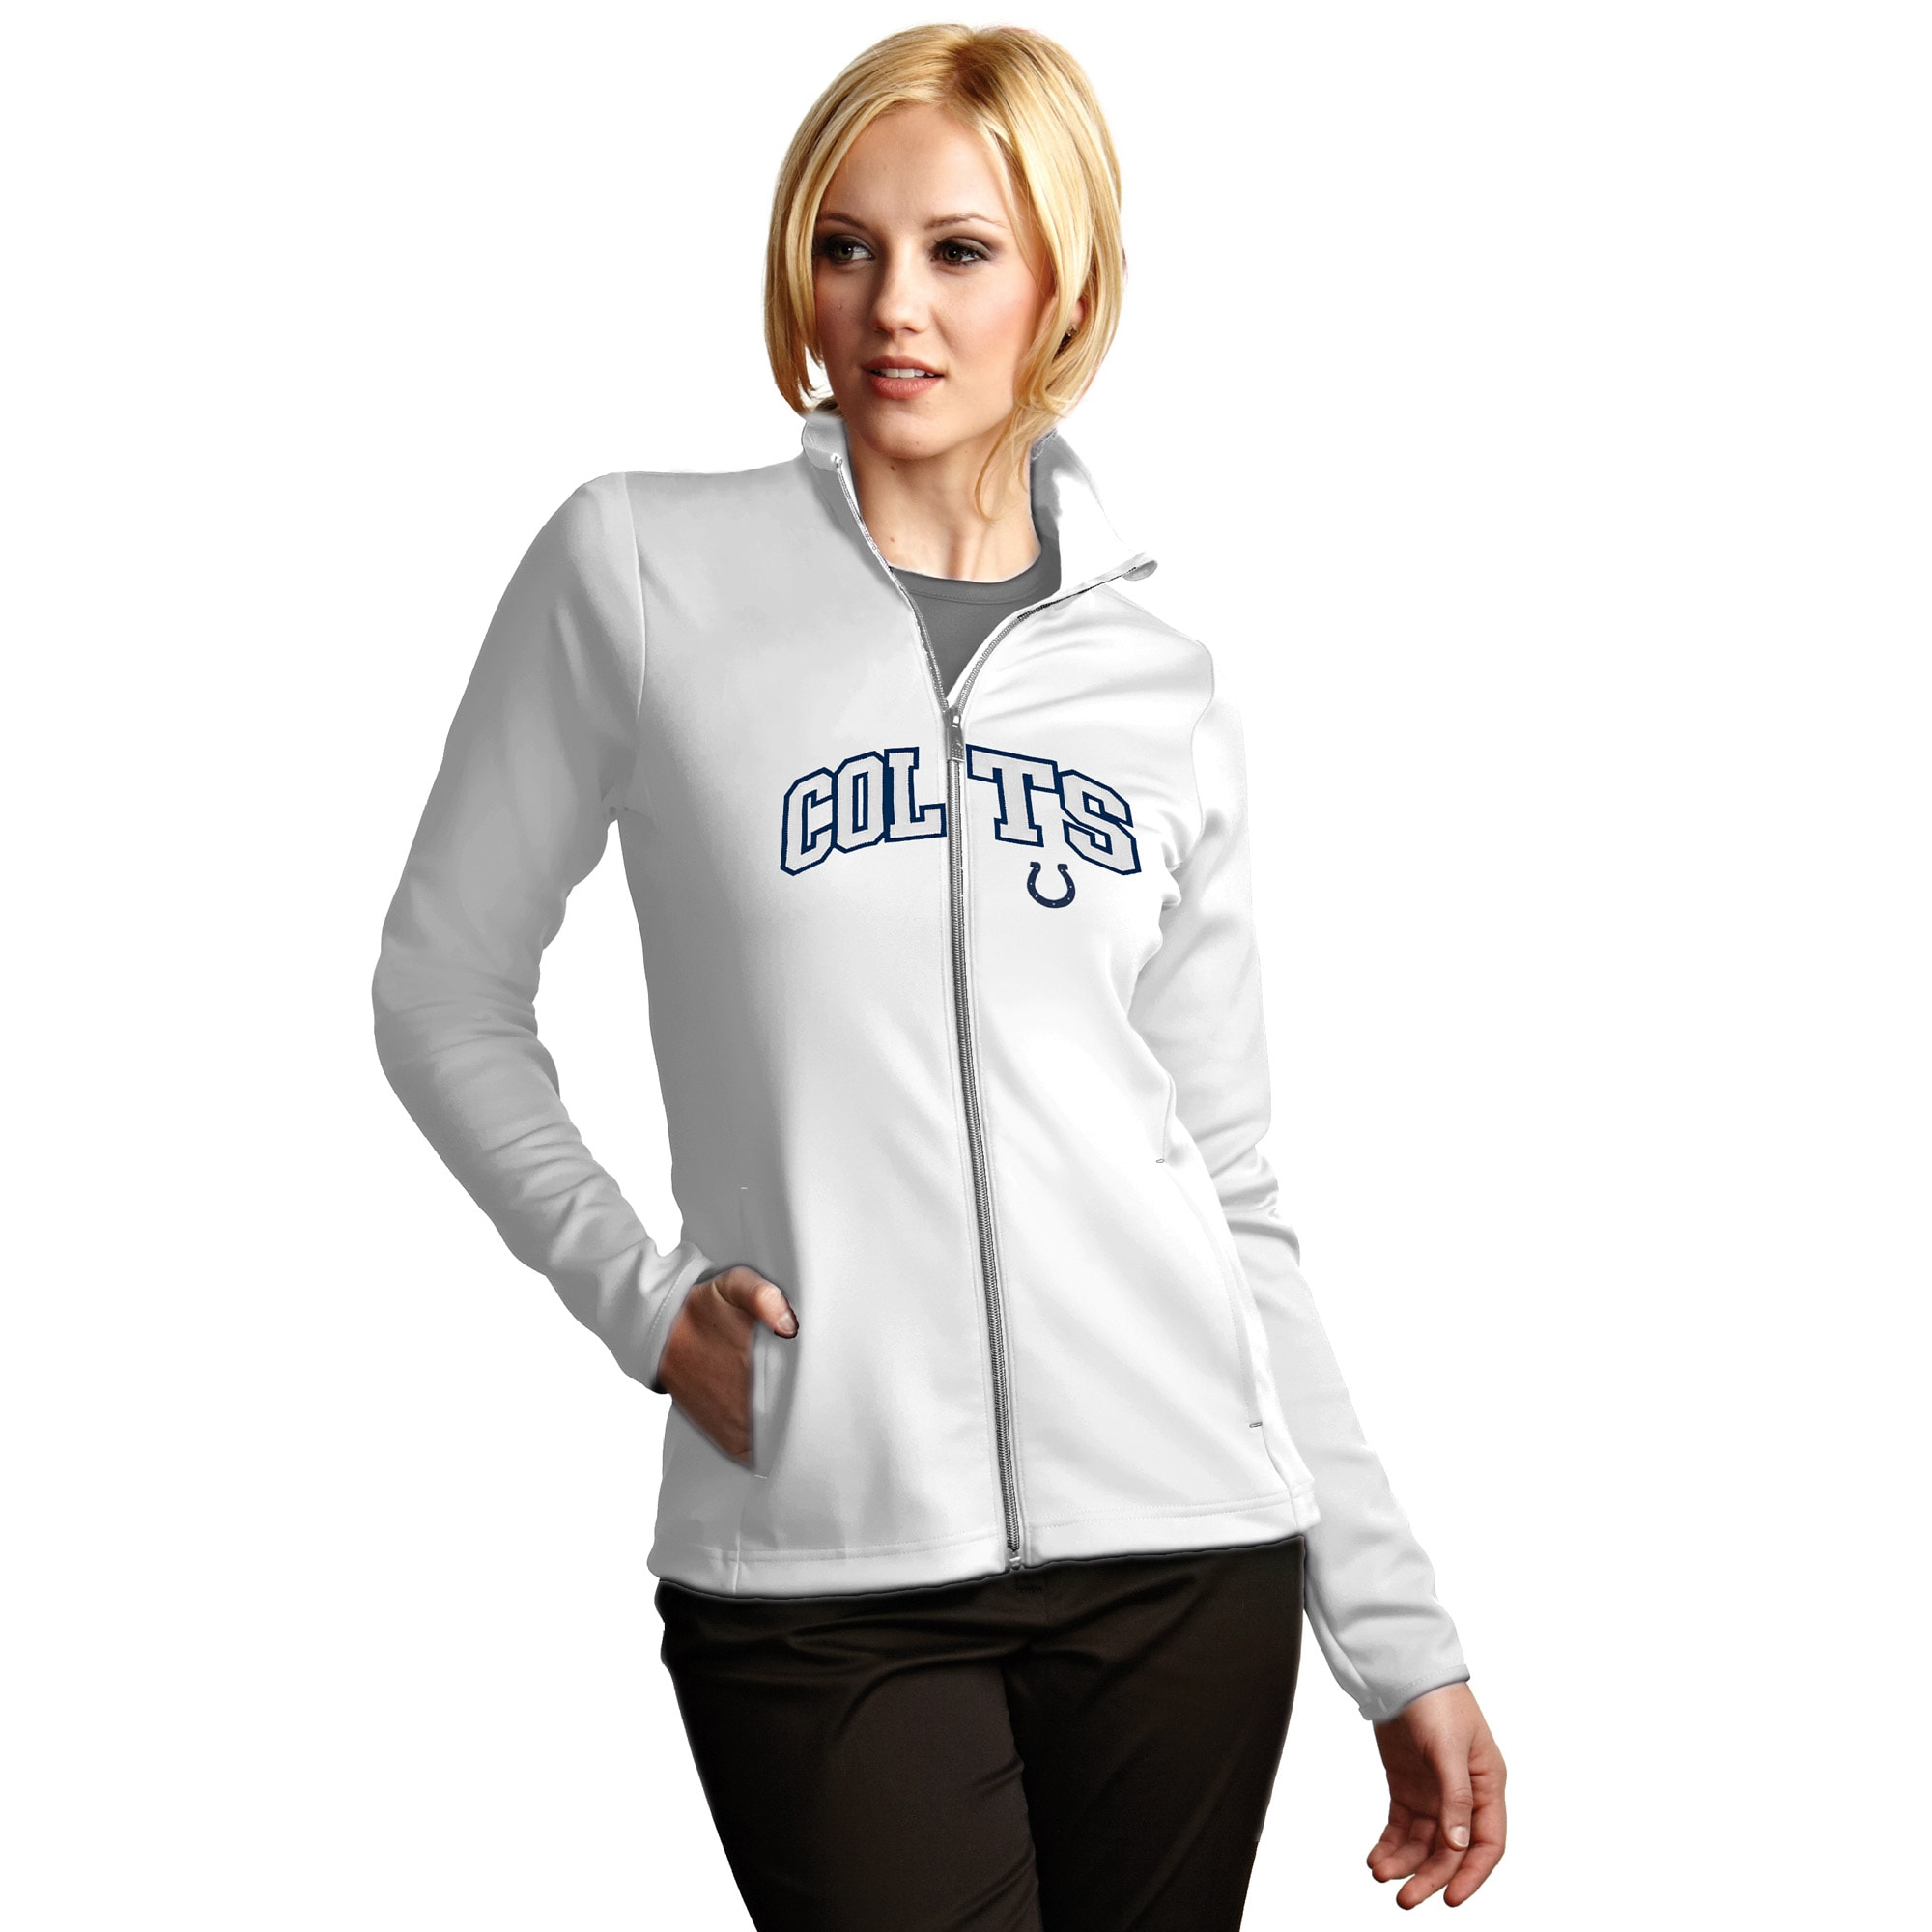 Indianapolis Colts Antigua Women's Leader Full Chest Graphic Desert Dry Full-Zip Jacket - White